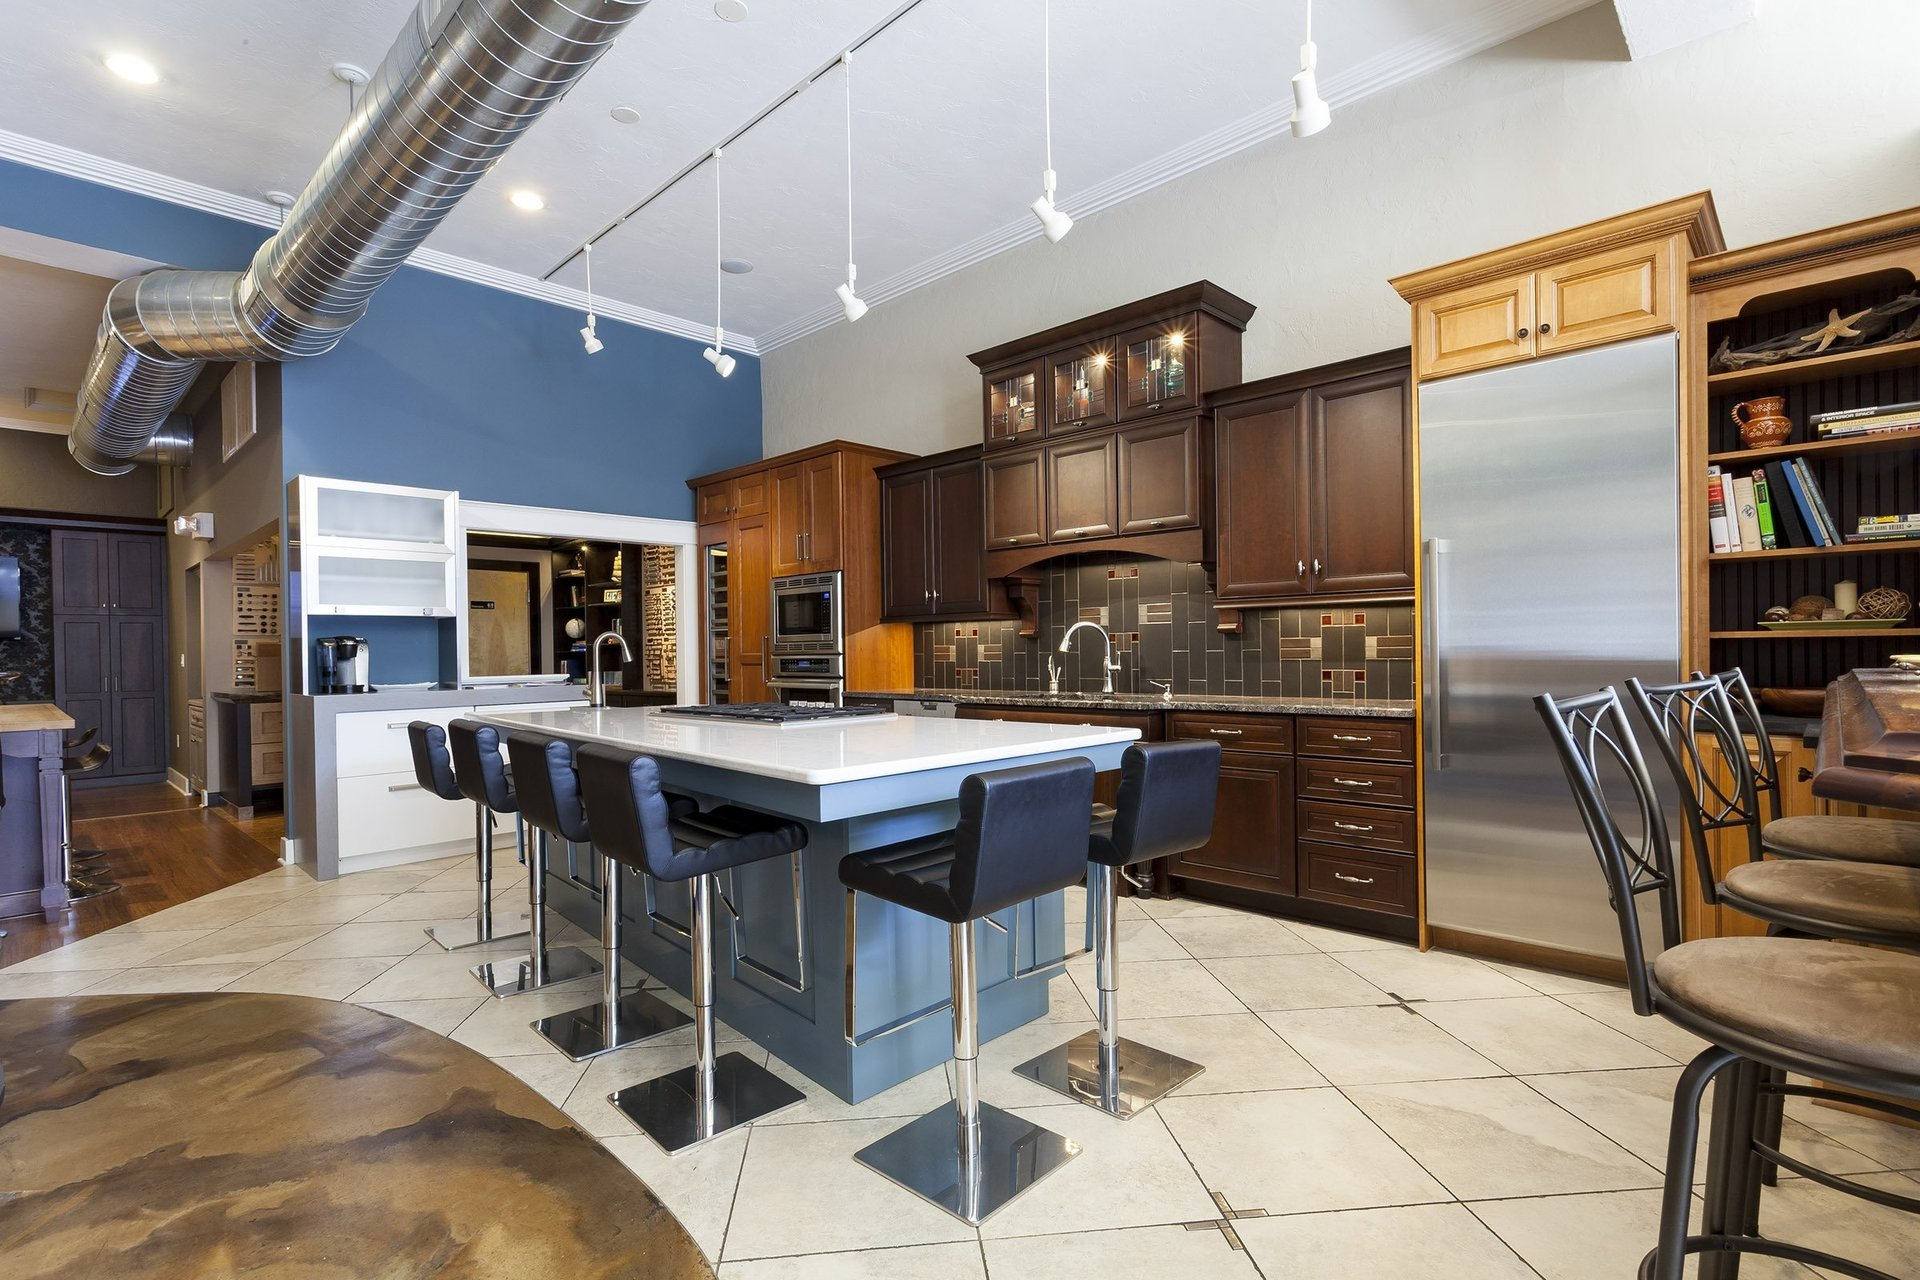 kitchen design pittsburgh jacob kitchen amp bath showroom pittsburgh pa 491